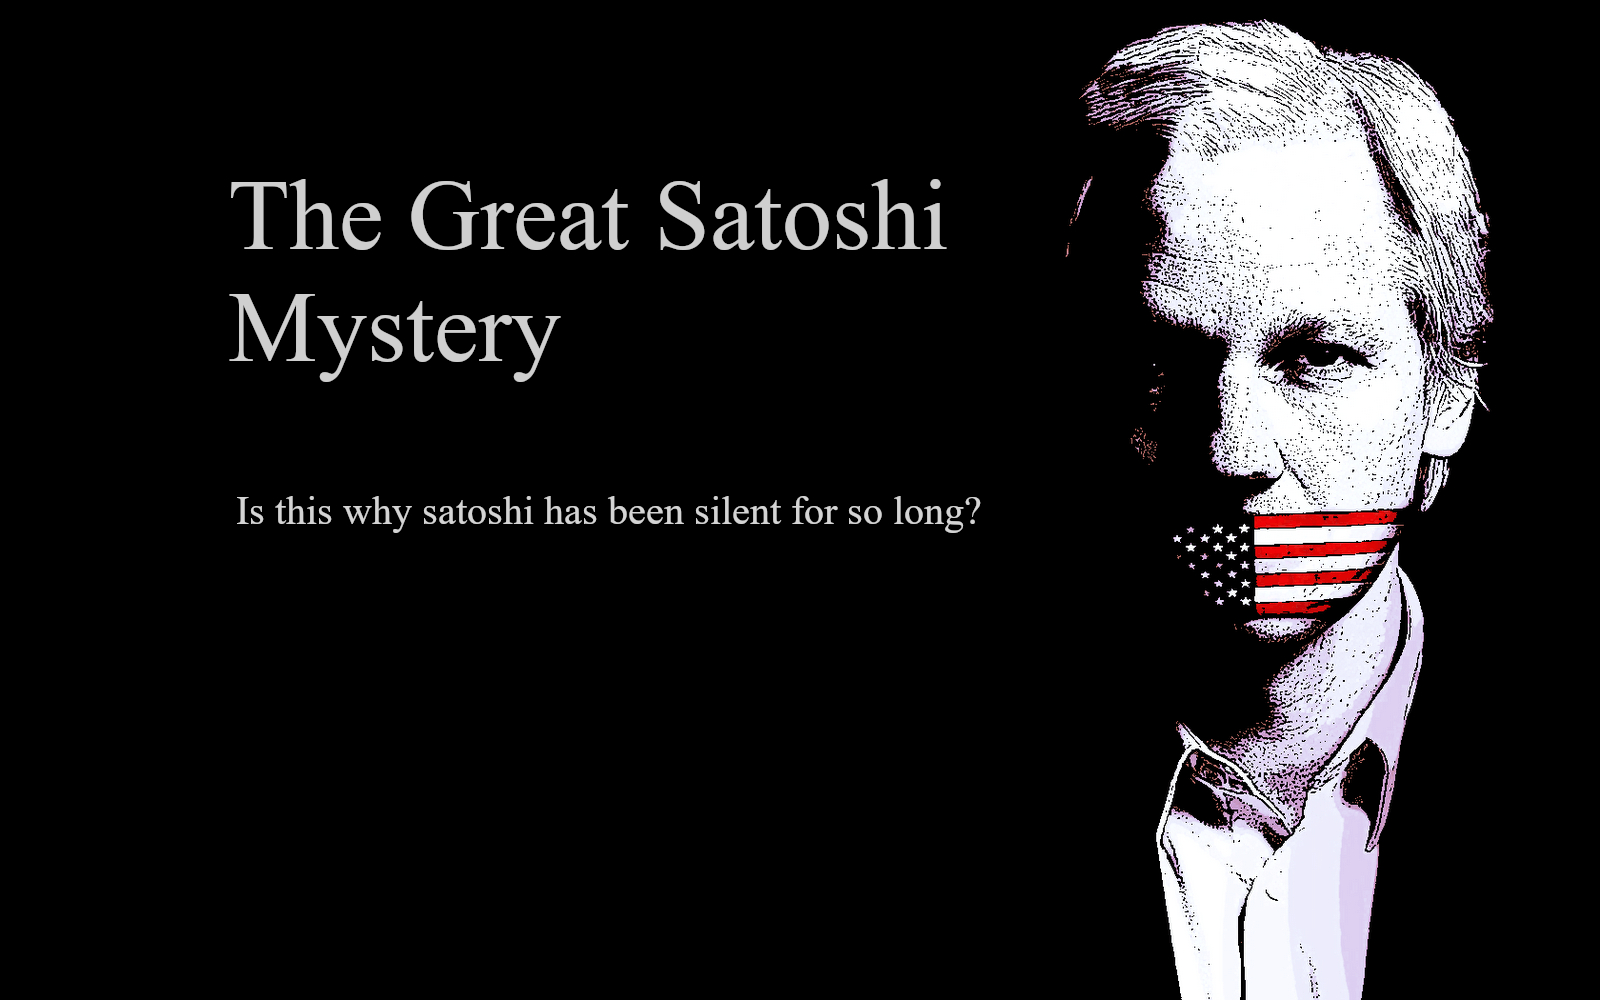 julian assange & the great satoshi mystery